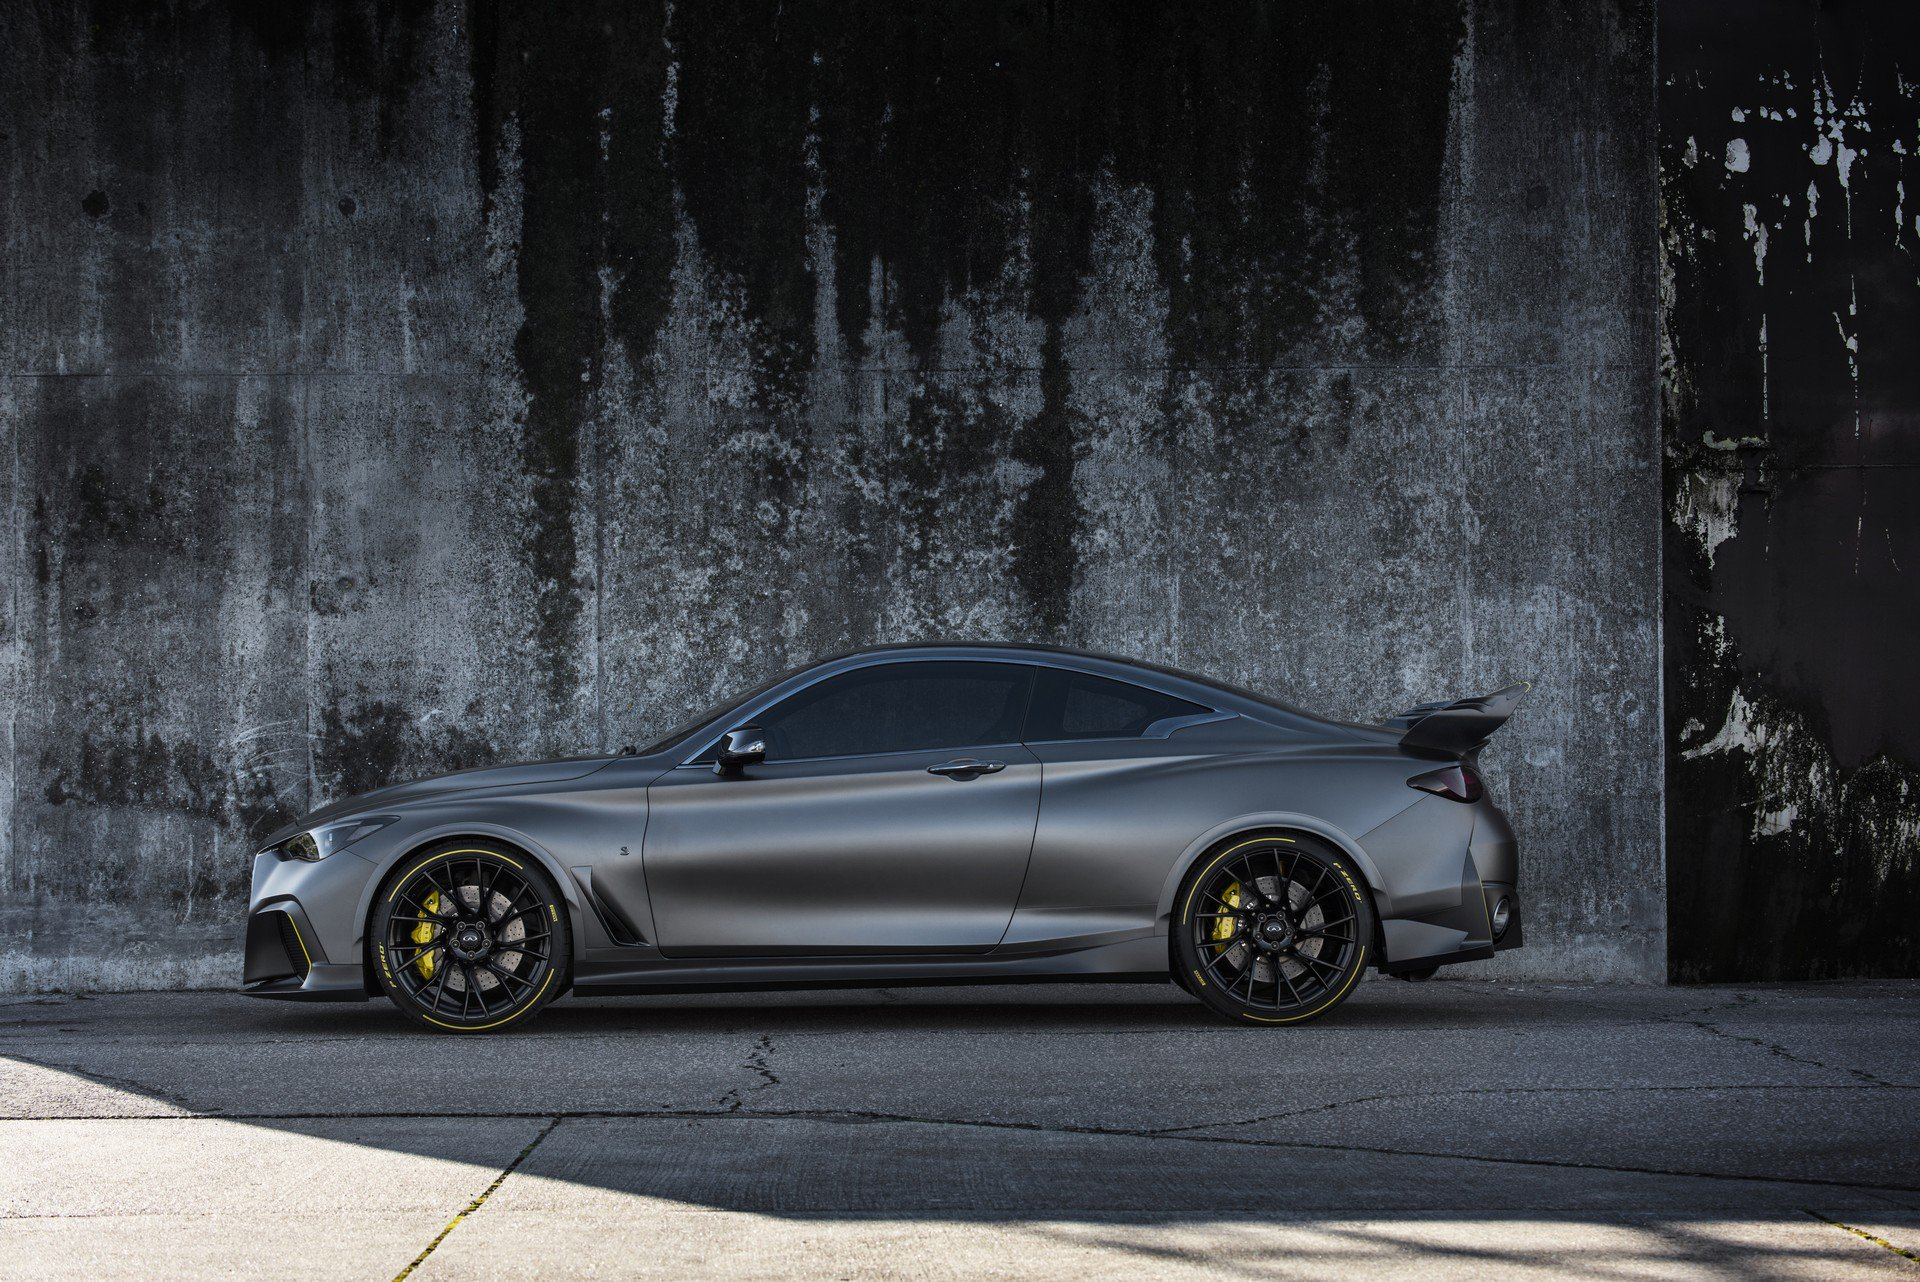 Infiniti Project Black S Prototype (9)